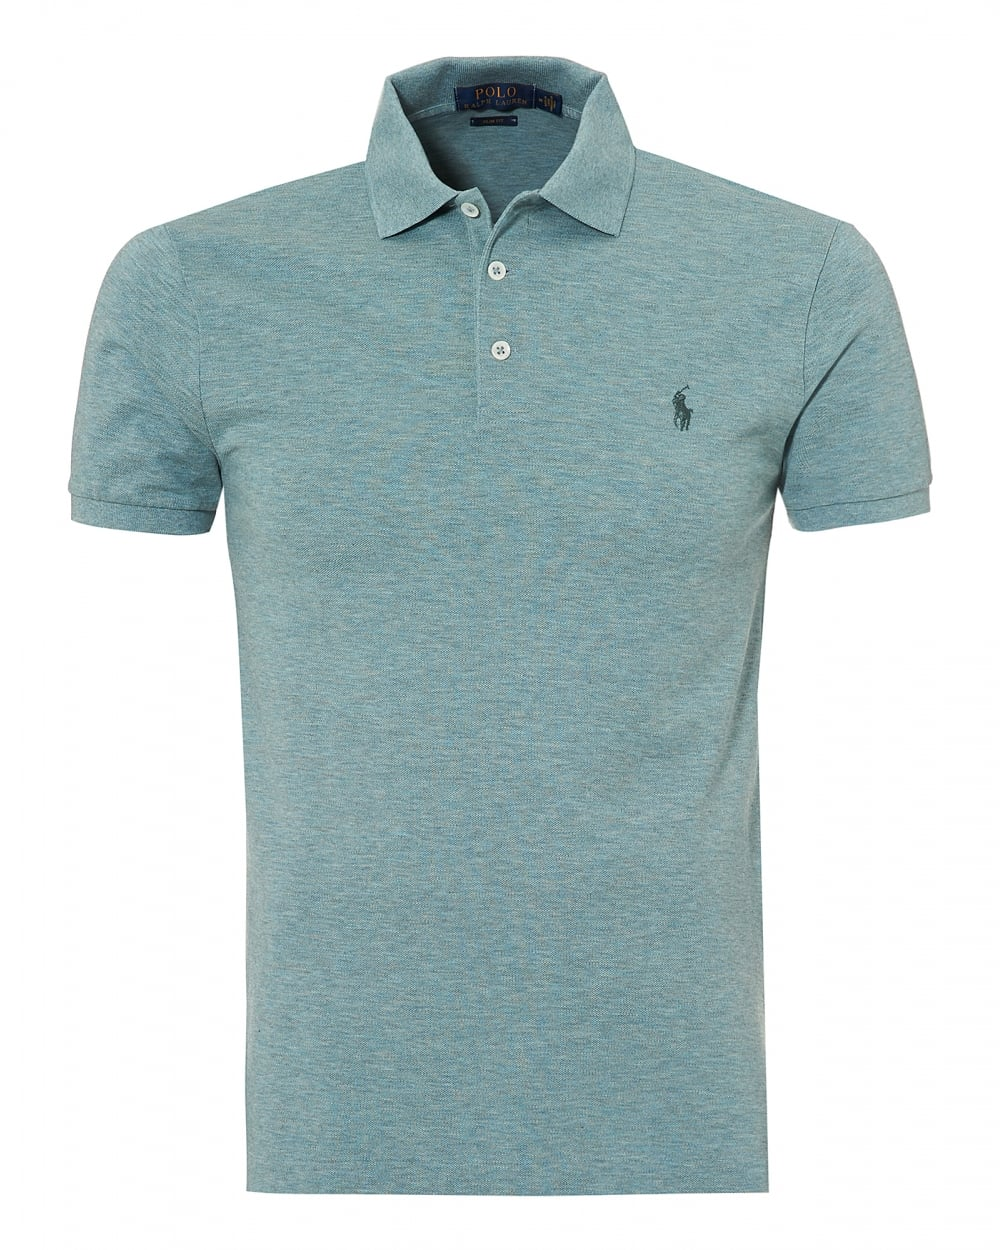 Mens Grey Green Plain Mesh Polo, Stretch Polo Shirt